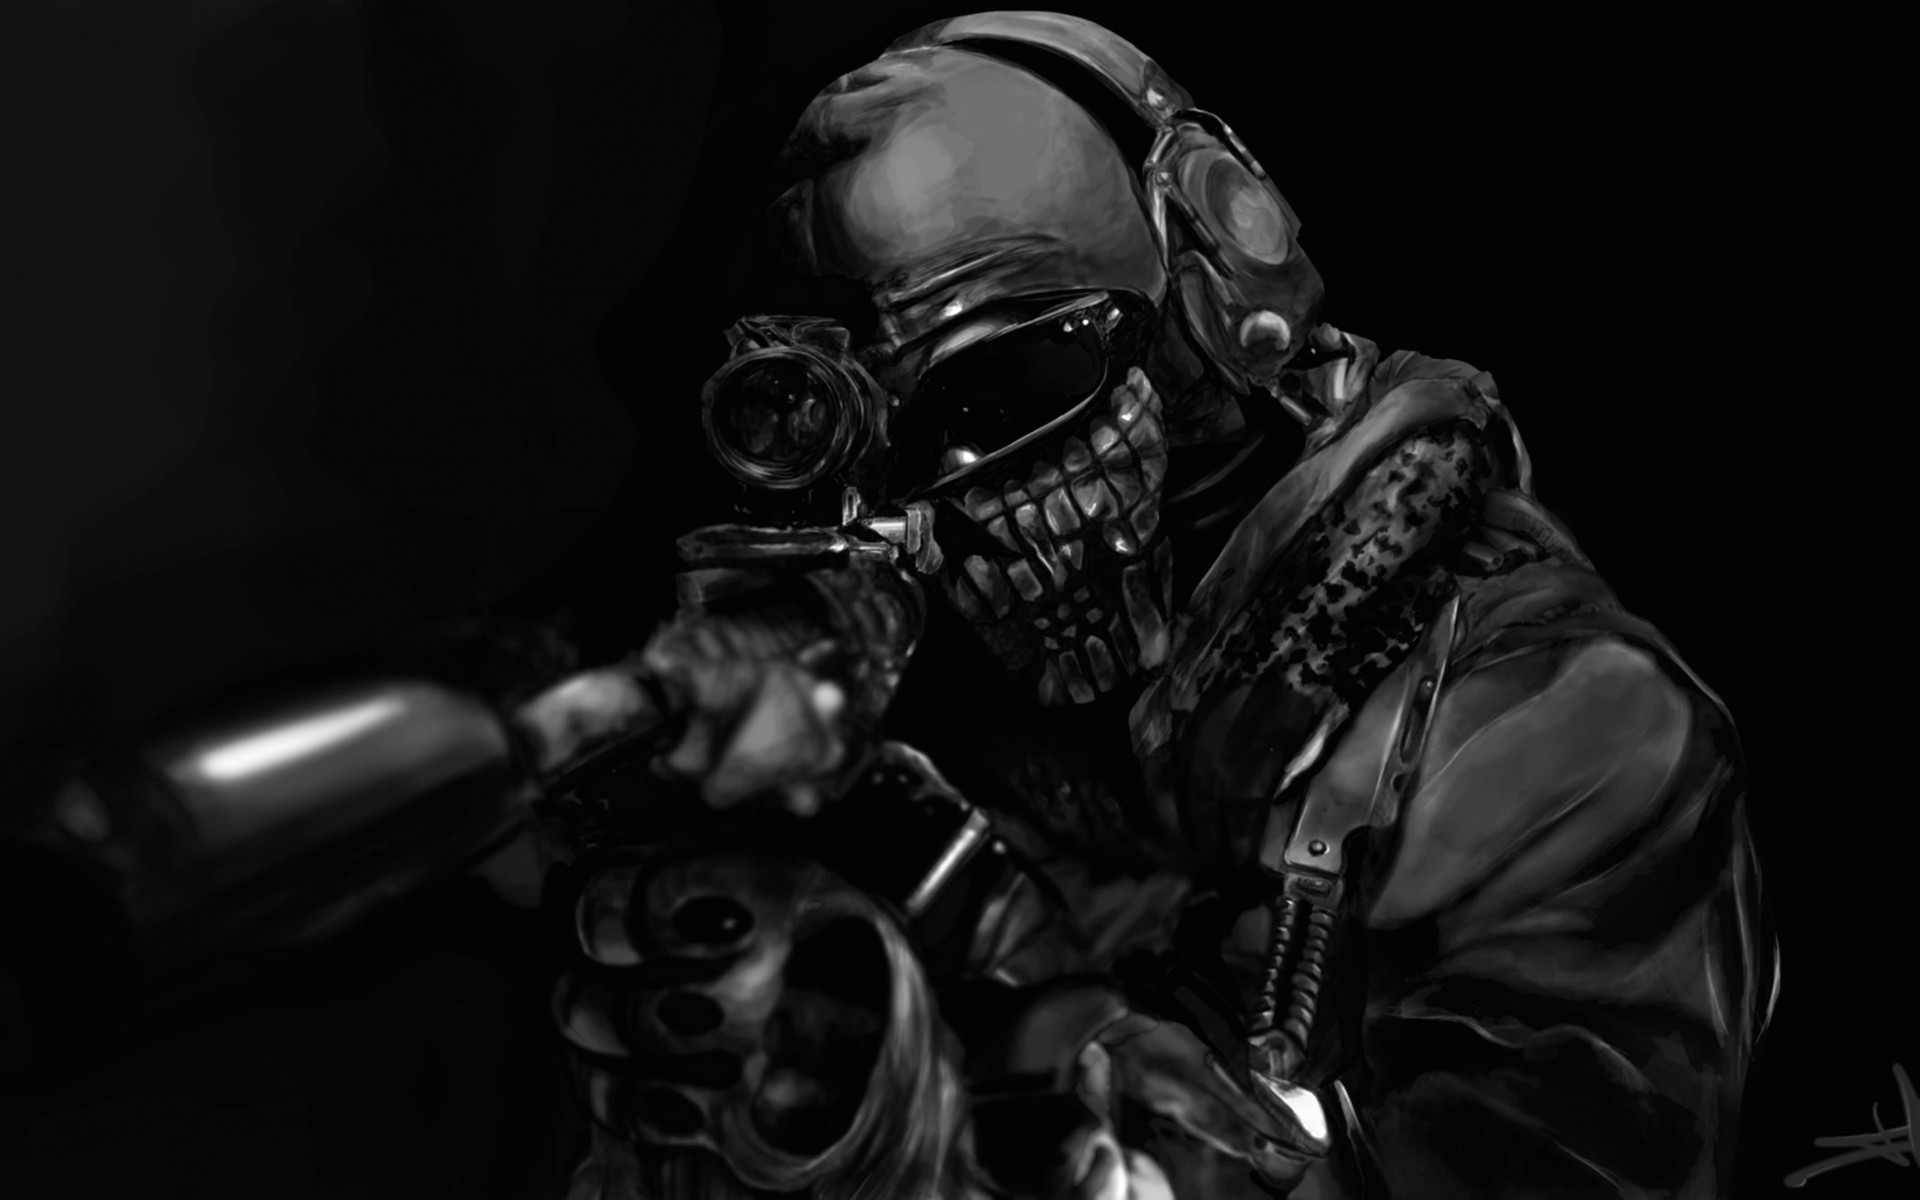 Call of Duty Ghost Masked Warrior Wallpaper for Desktop 1920x1200